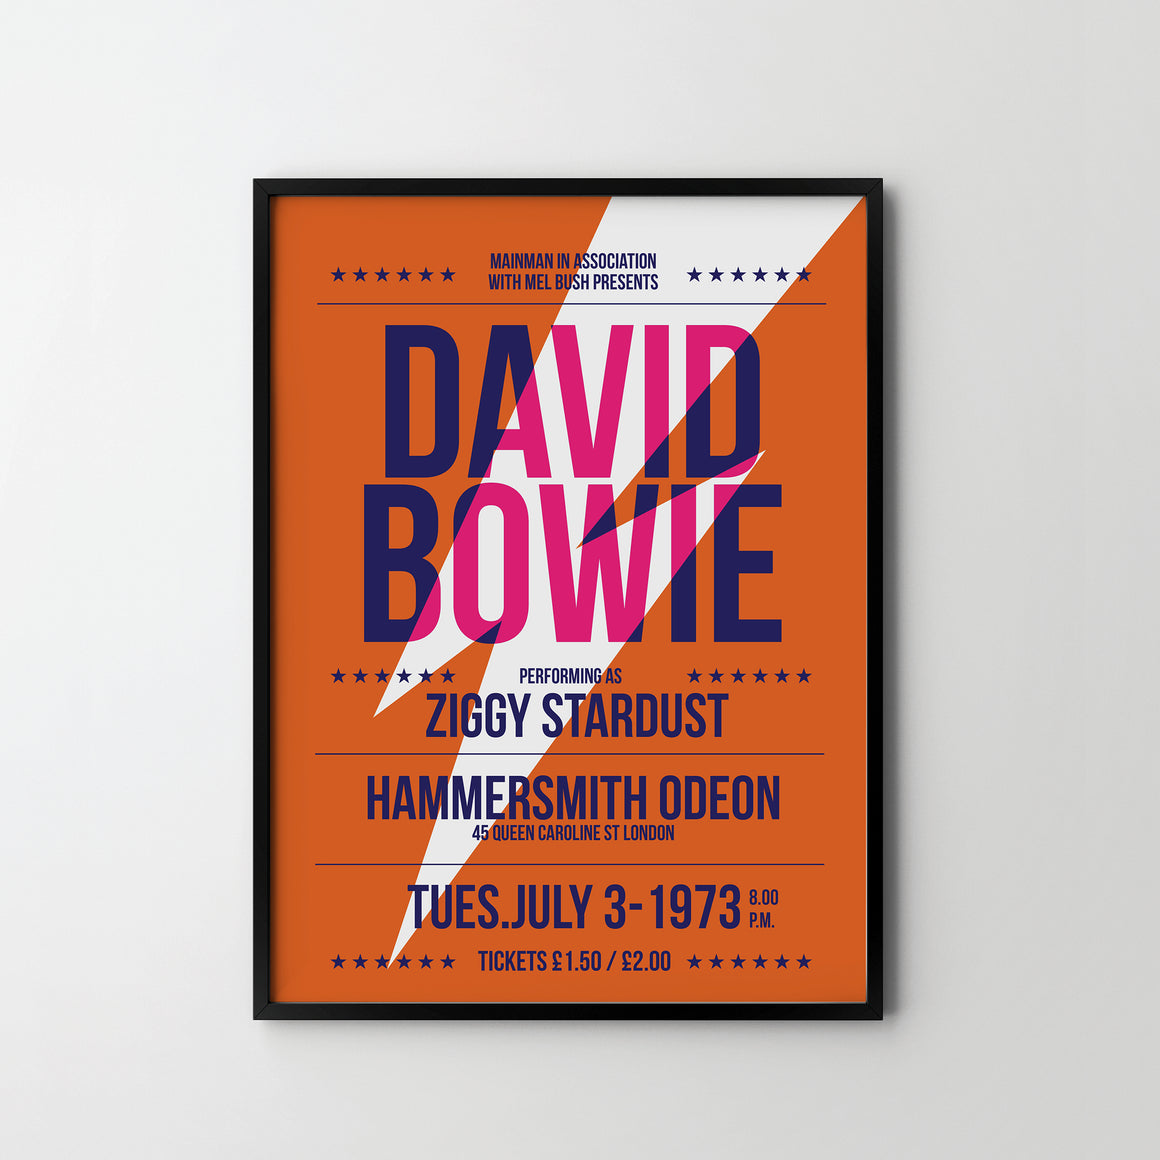 DAVID BOWIE Ziggy Stardust CONCERT Poster Art Print, Music Rock Posters - SOA State of Art